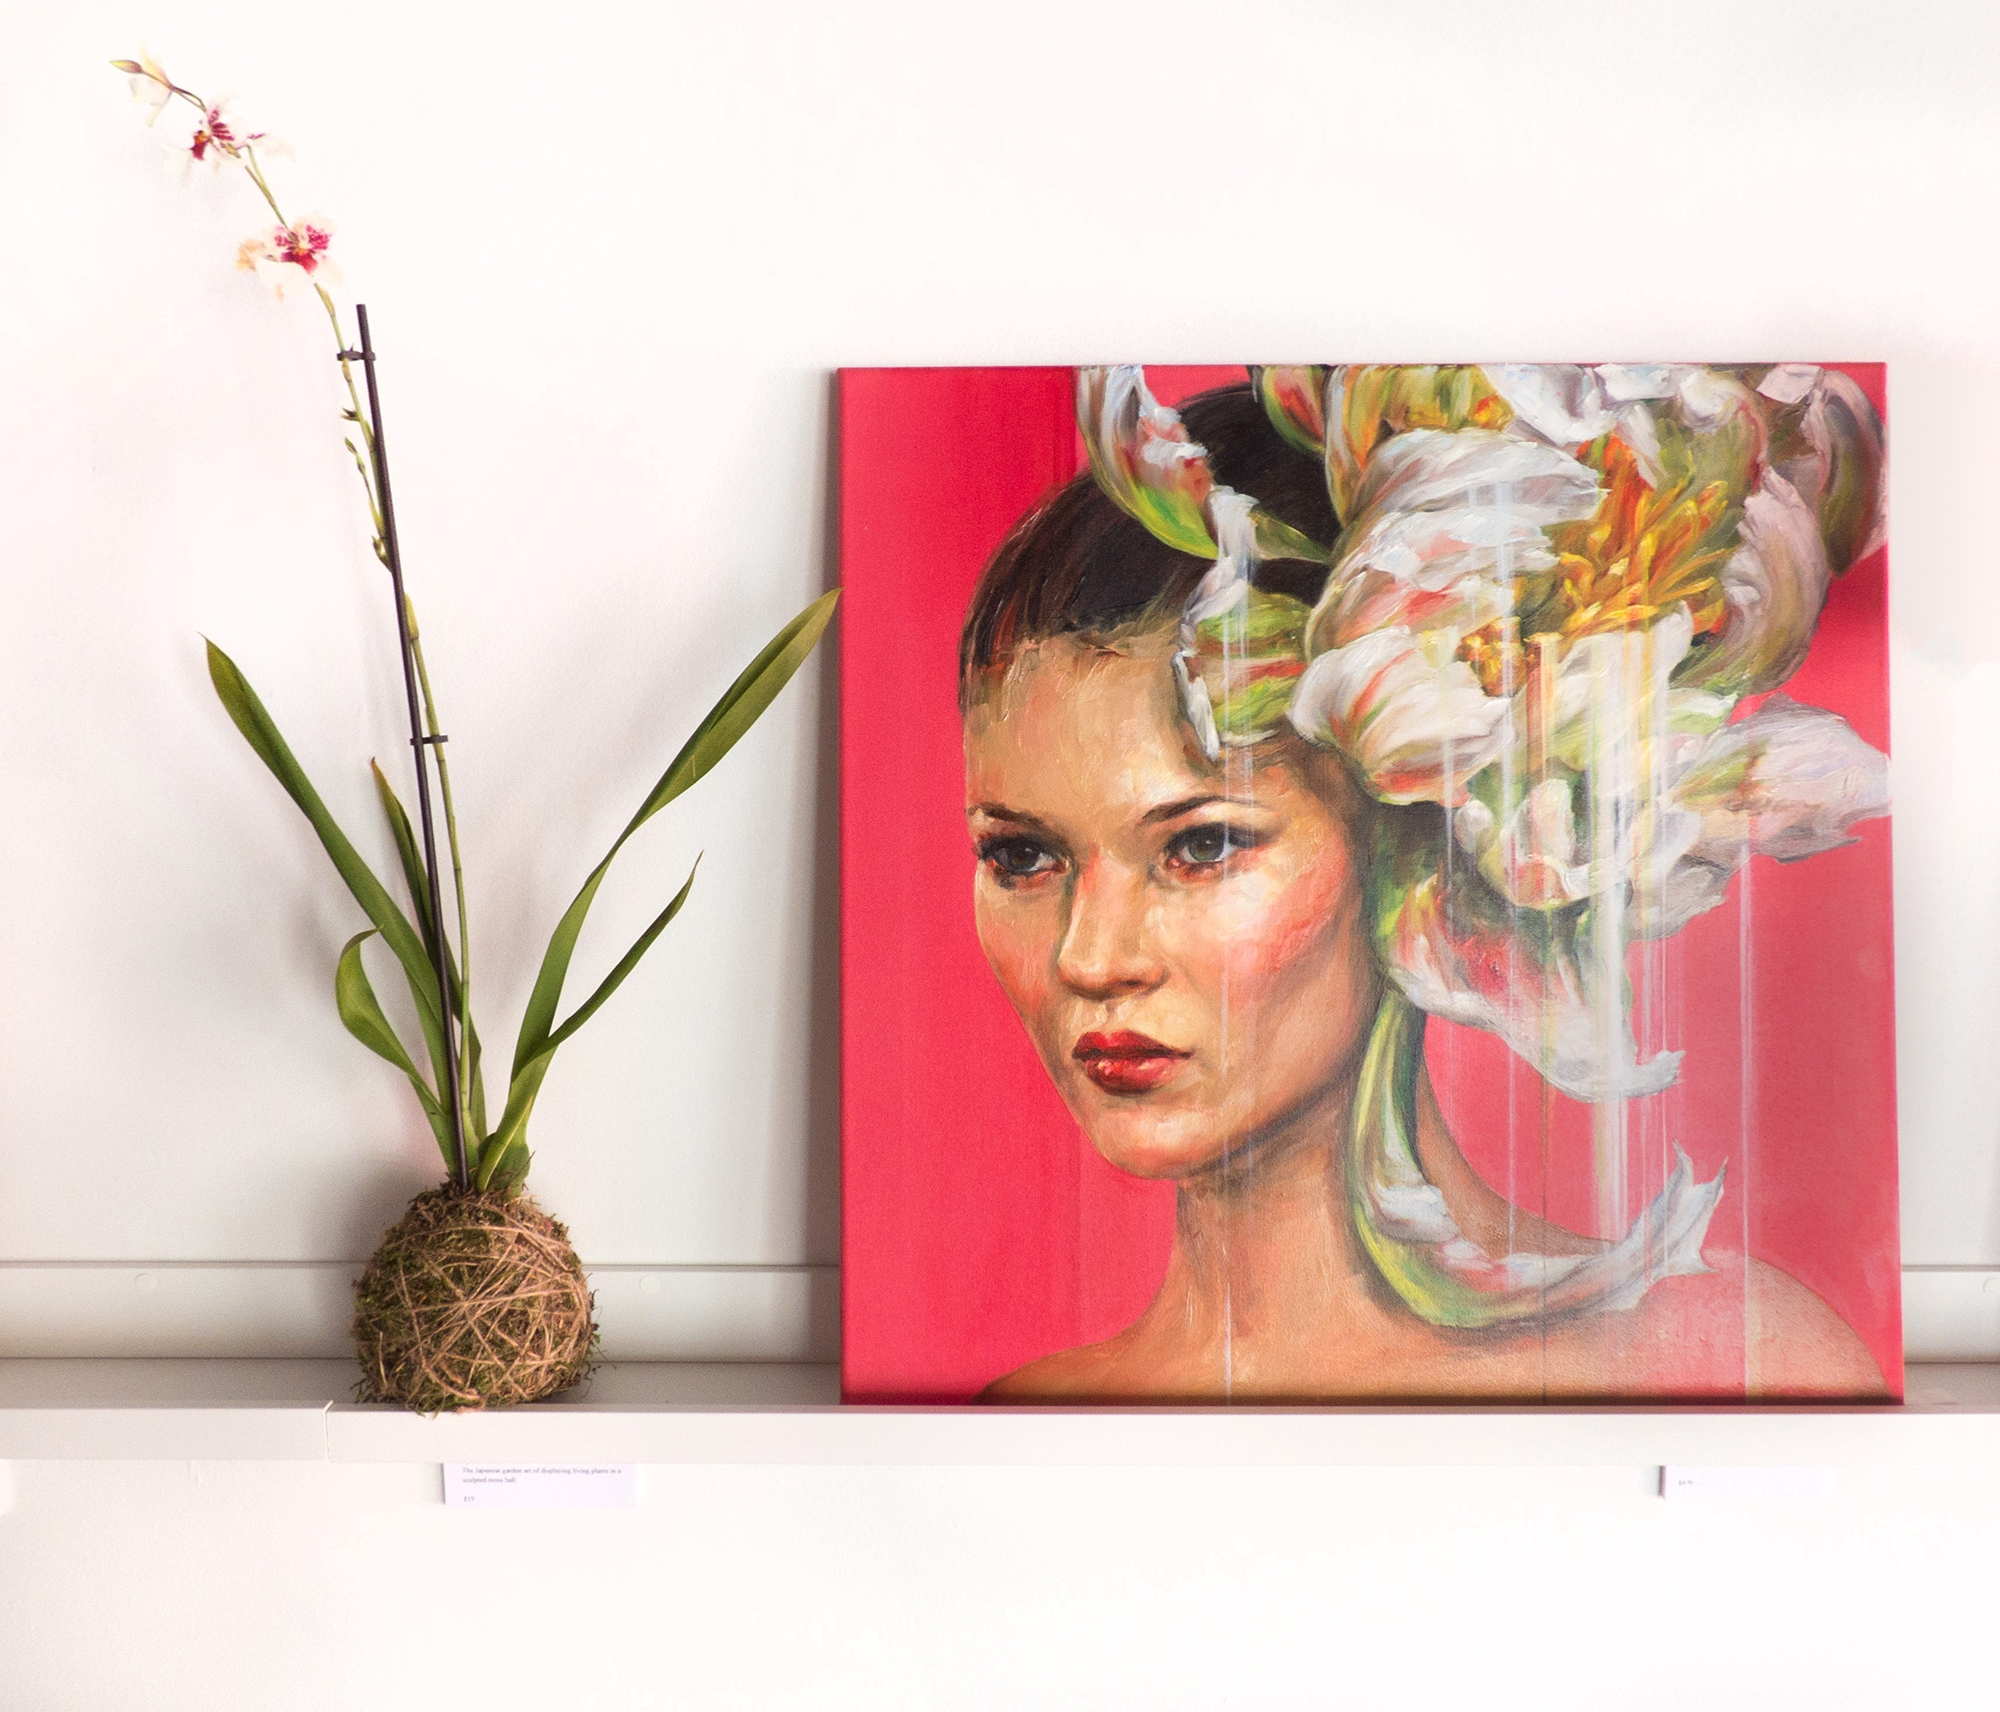 My oil painting of fashion icon Kate Moss, painted from my original source work in digital collage and transformative photoshop. Styled here by The Plant Room with beautiful Kokedama orchids.